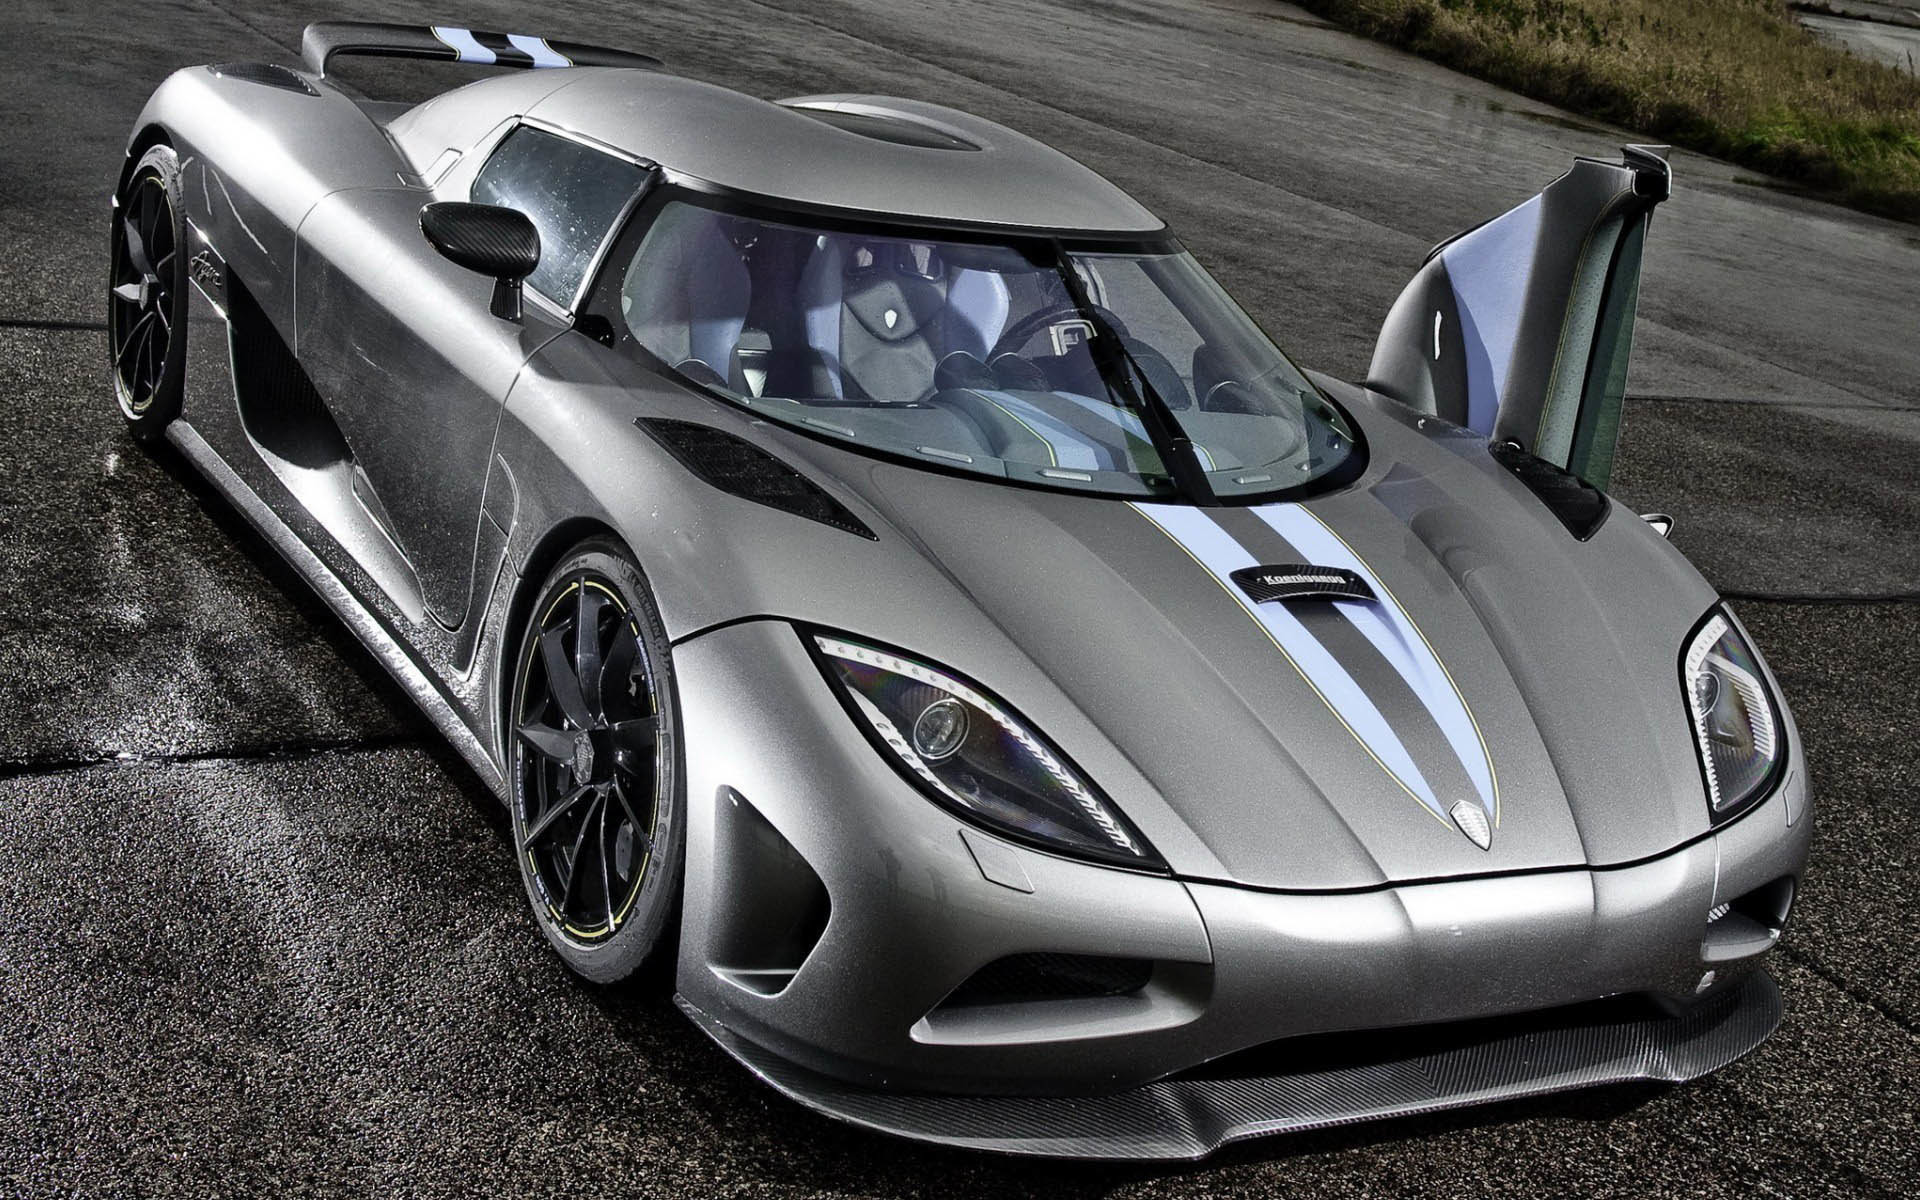 1920x1200 ... koenigsegg agera r  full hd 16 10 wallpaper 5101 ...